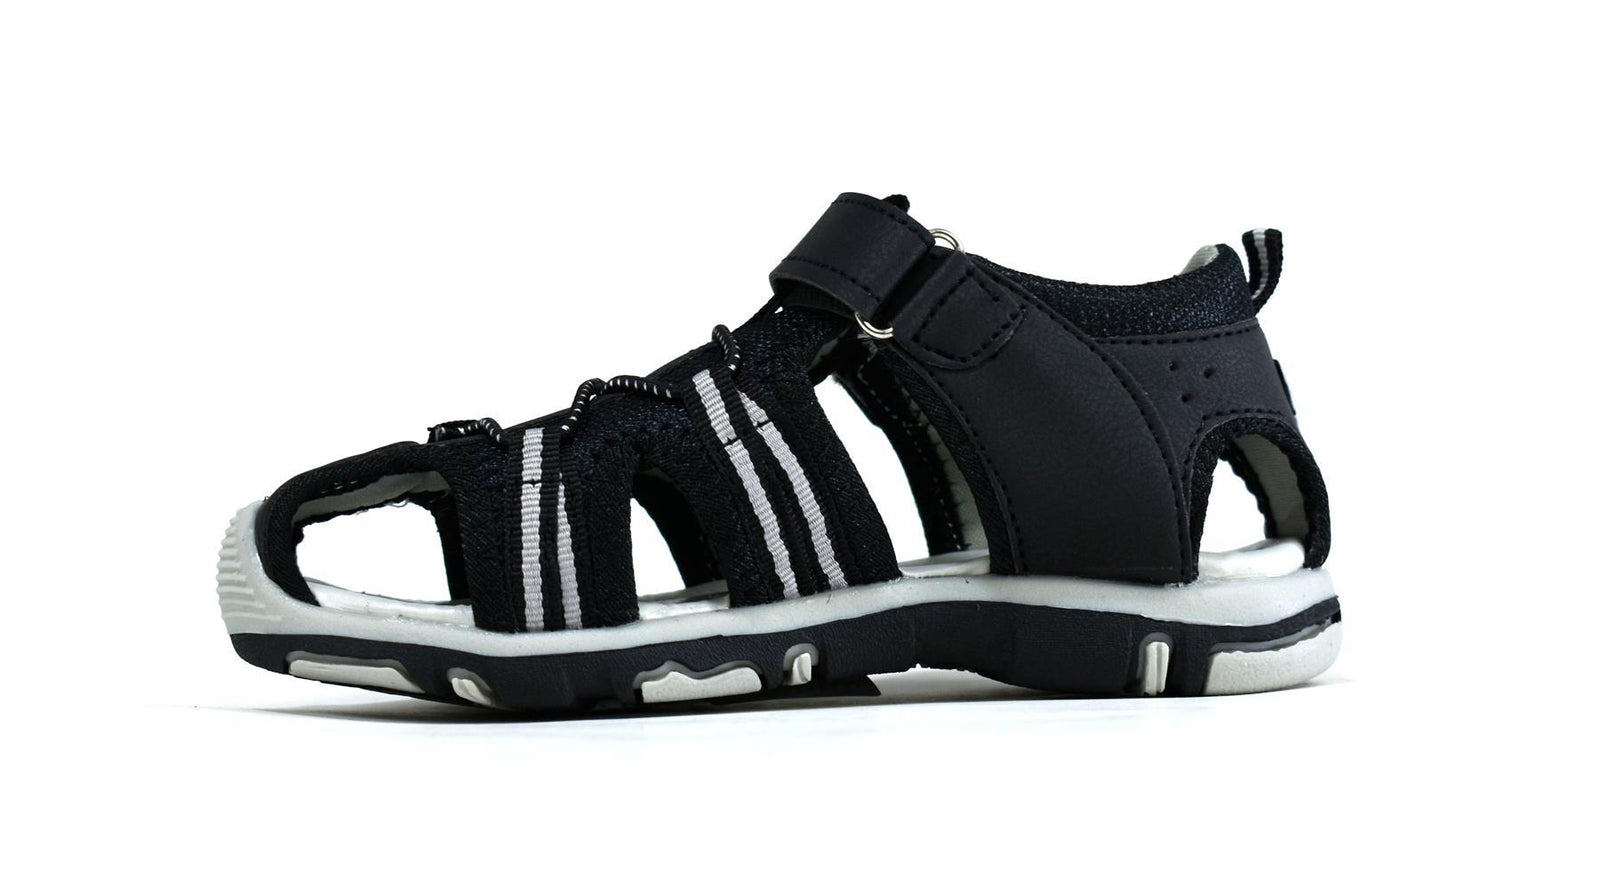 Oakley Boy's Sandal Black/Grey